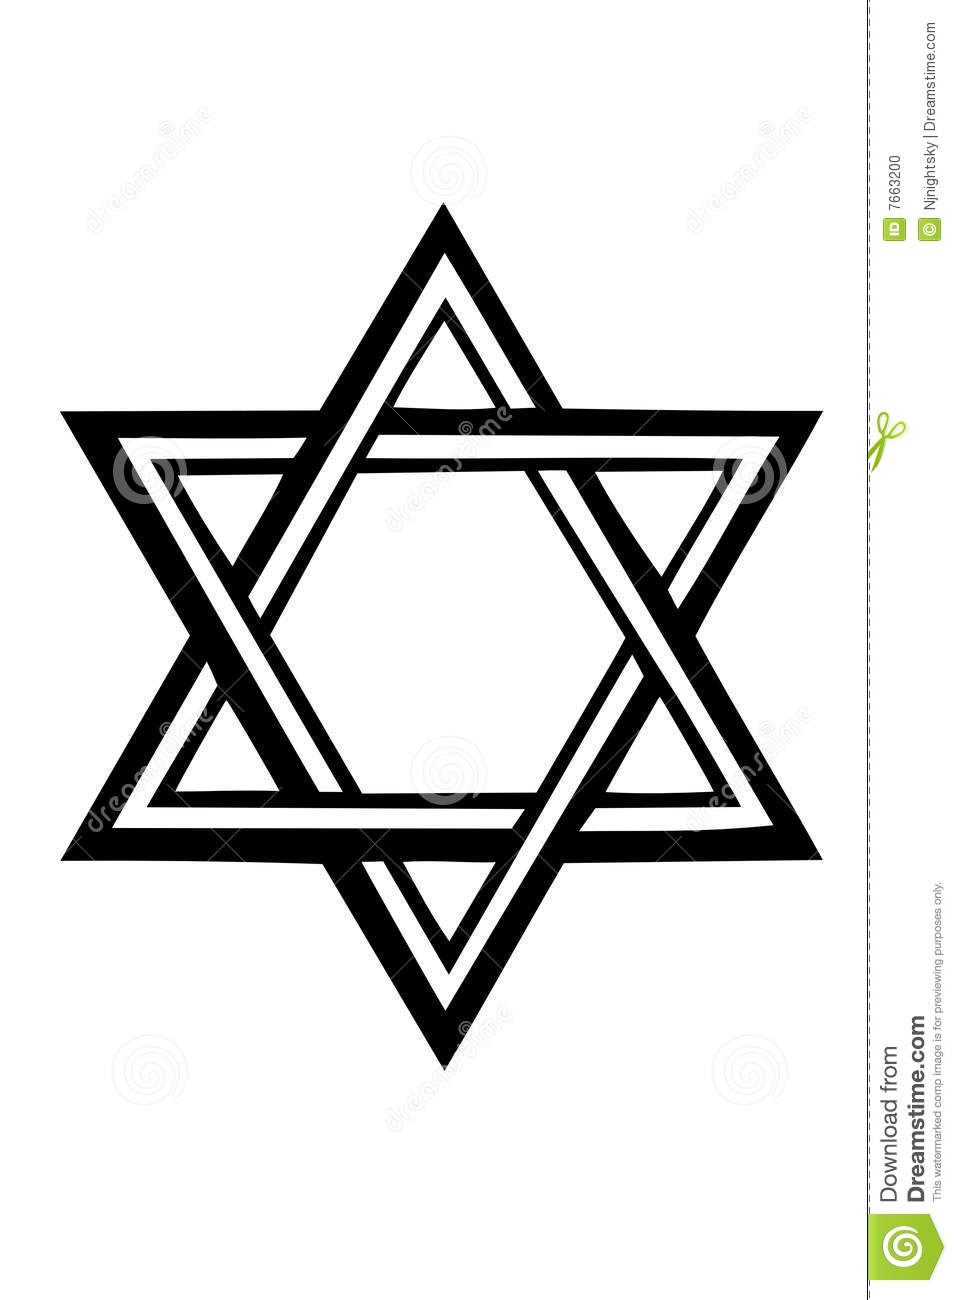 Star Of David Stock Vector Illustration Of Isolate Ideas And Designs